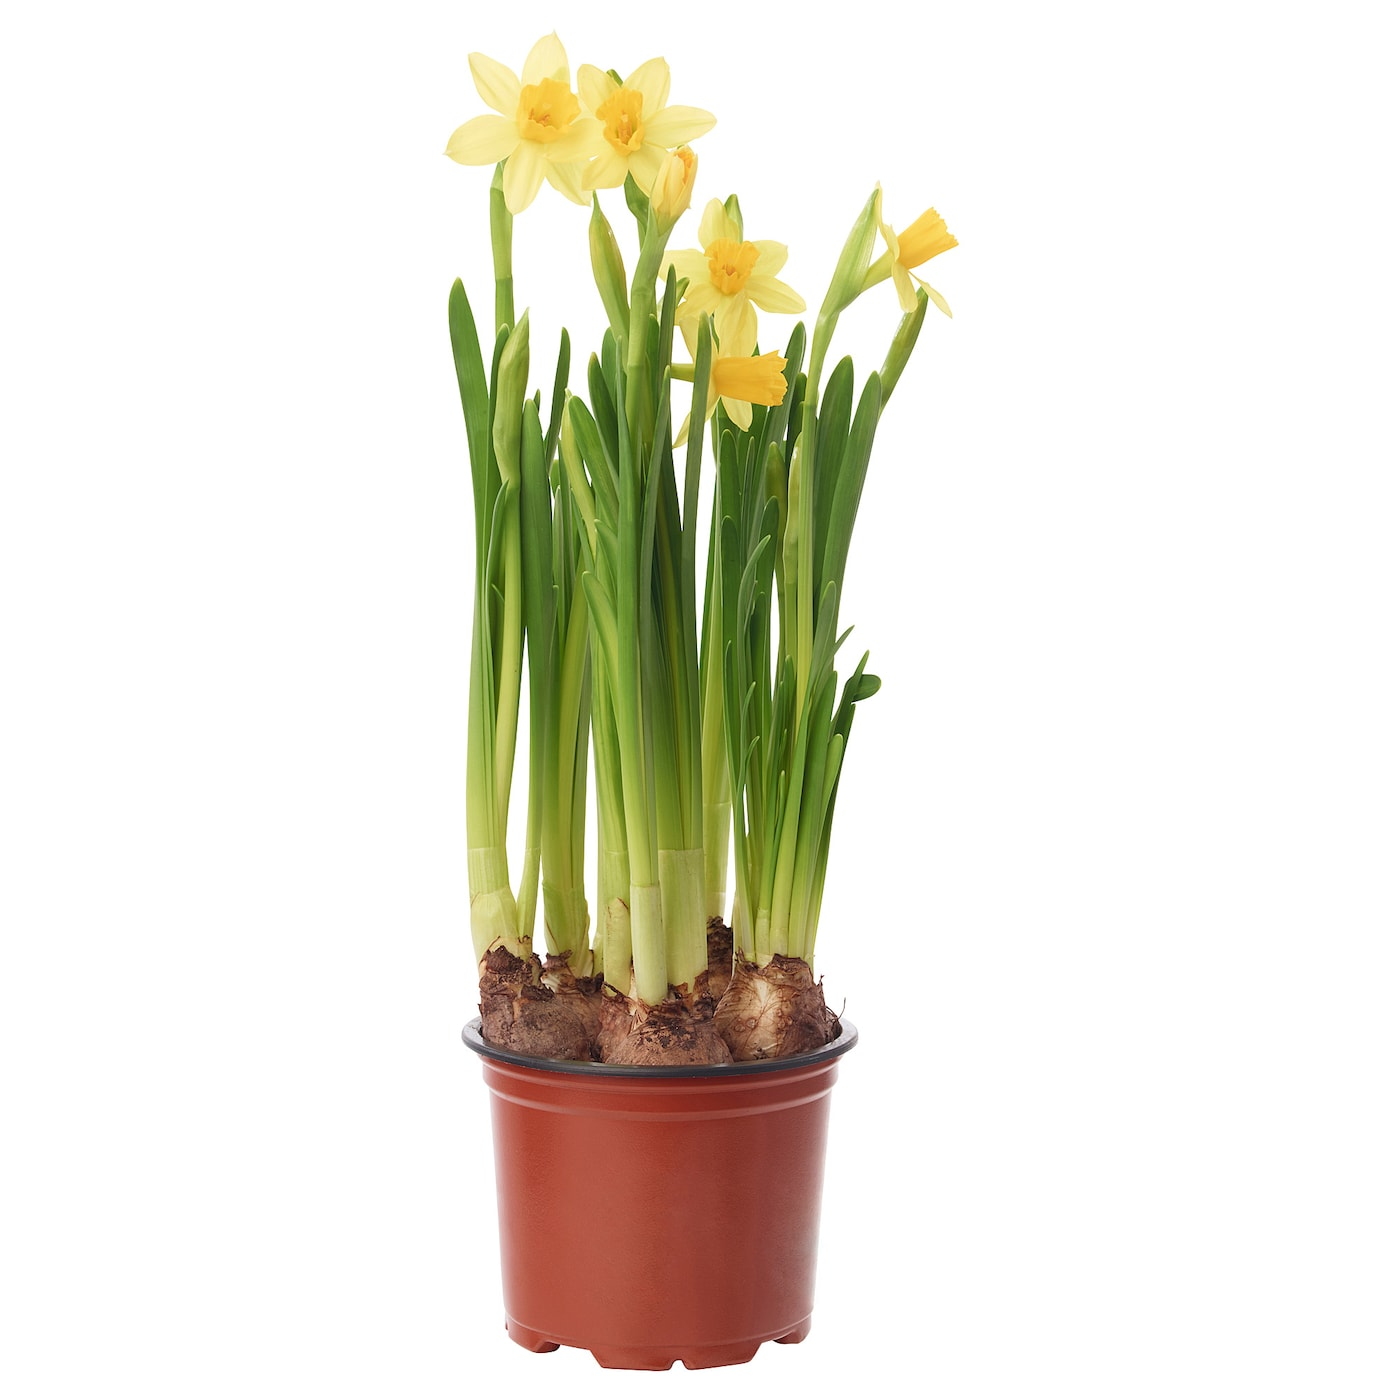 narcissus cyclamineus tete a tete plante en pot jonquille. Black Bedroom Furniture Sets. Home Design Ideas